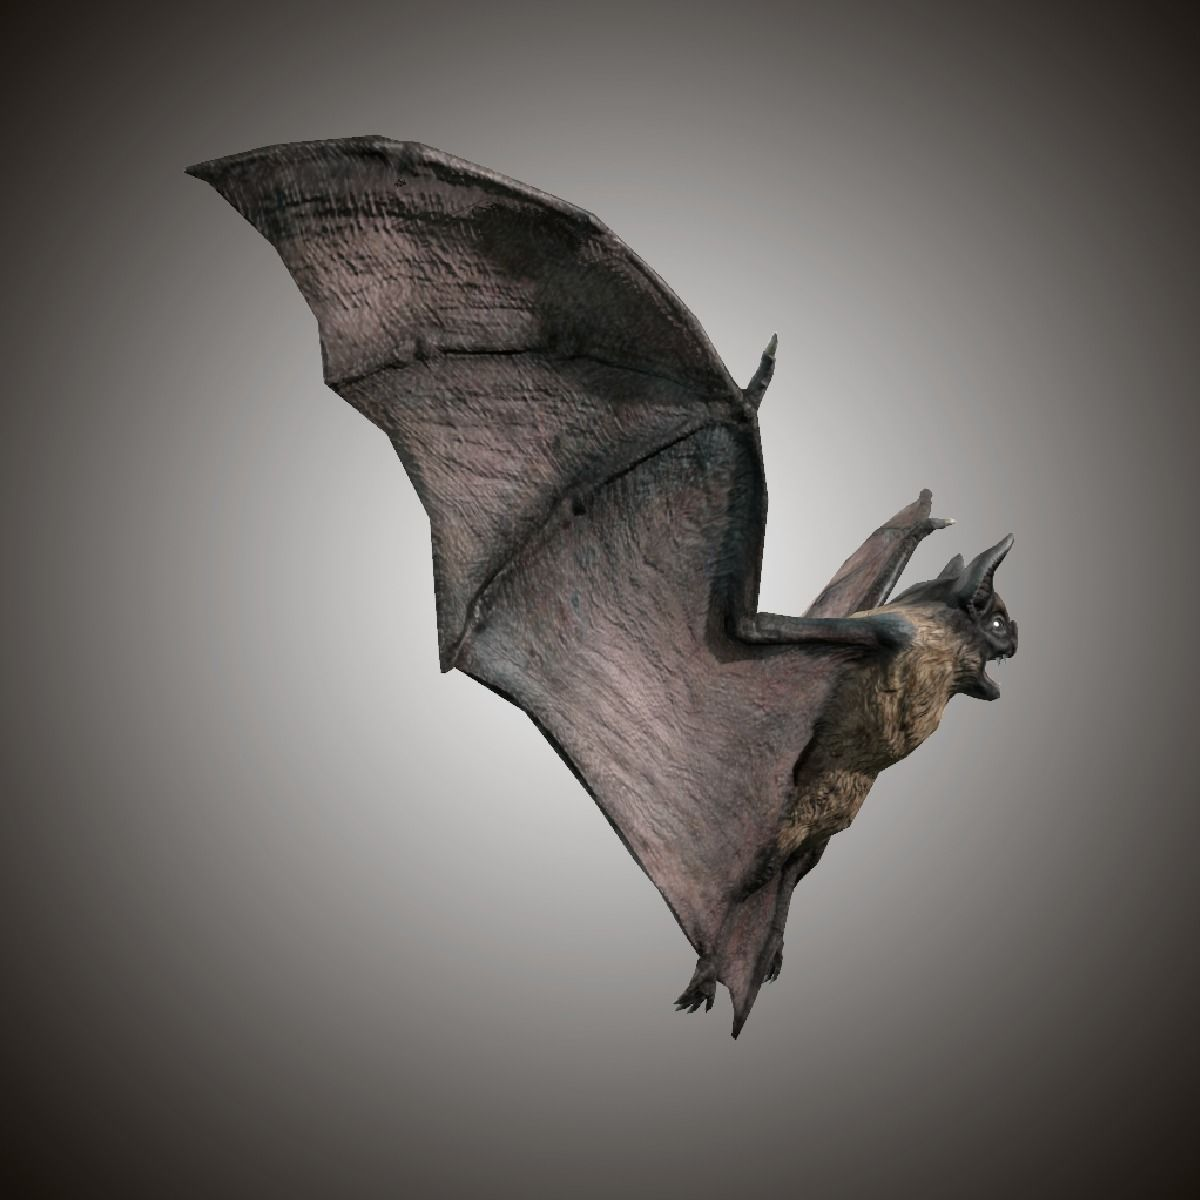 darkness yet bats Stefan greif and björn siemers from the max planck institute for ornithology have found that bats they hadn't yet search not exactly rocket science.